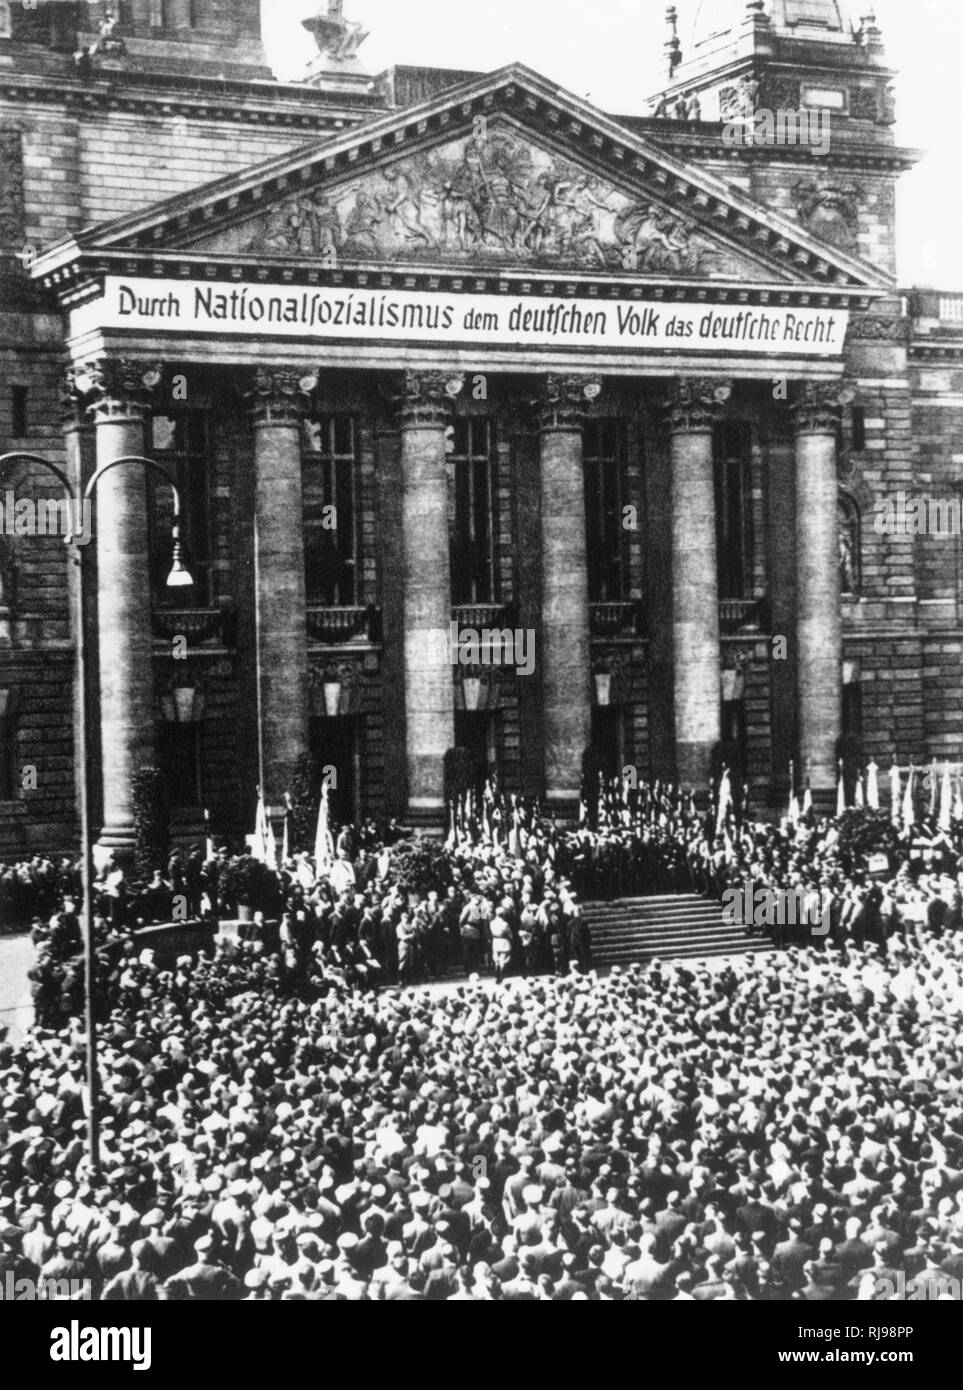 Nazi rally in front of the Reichstag. Stock Photo